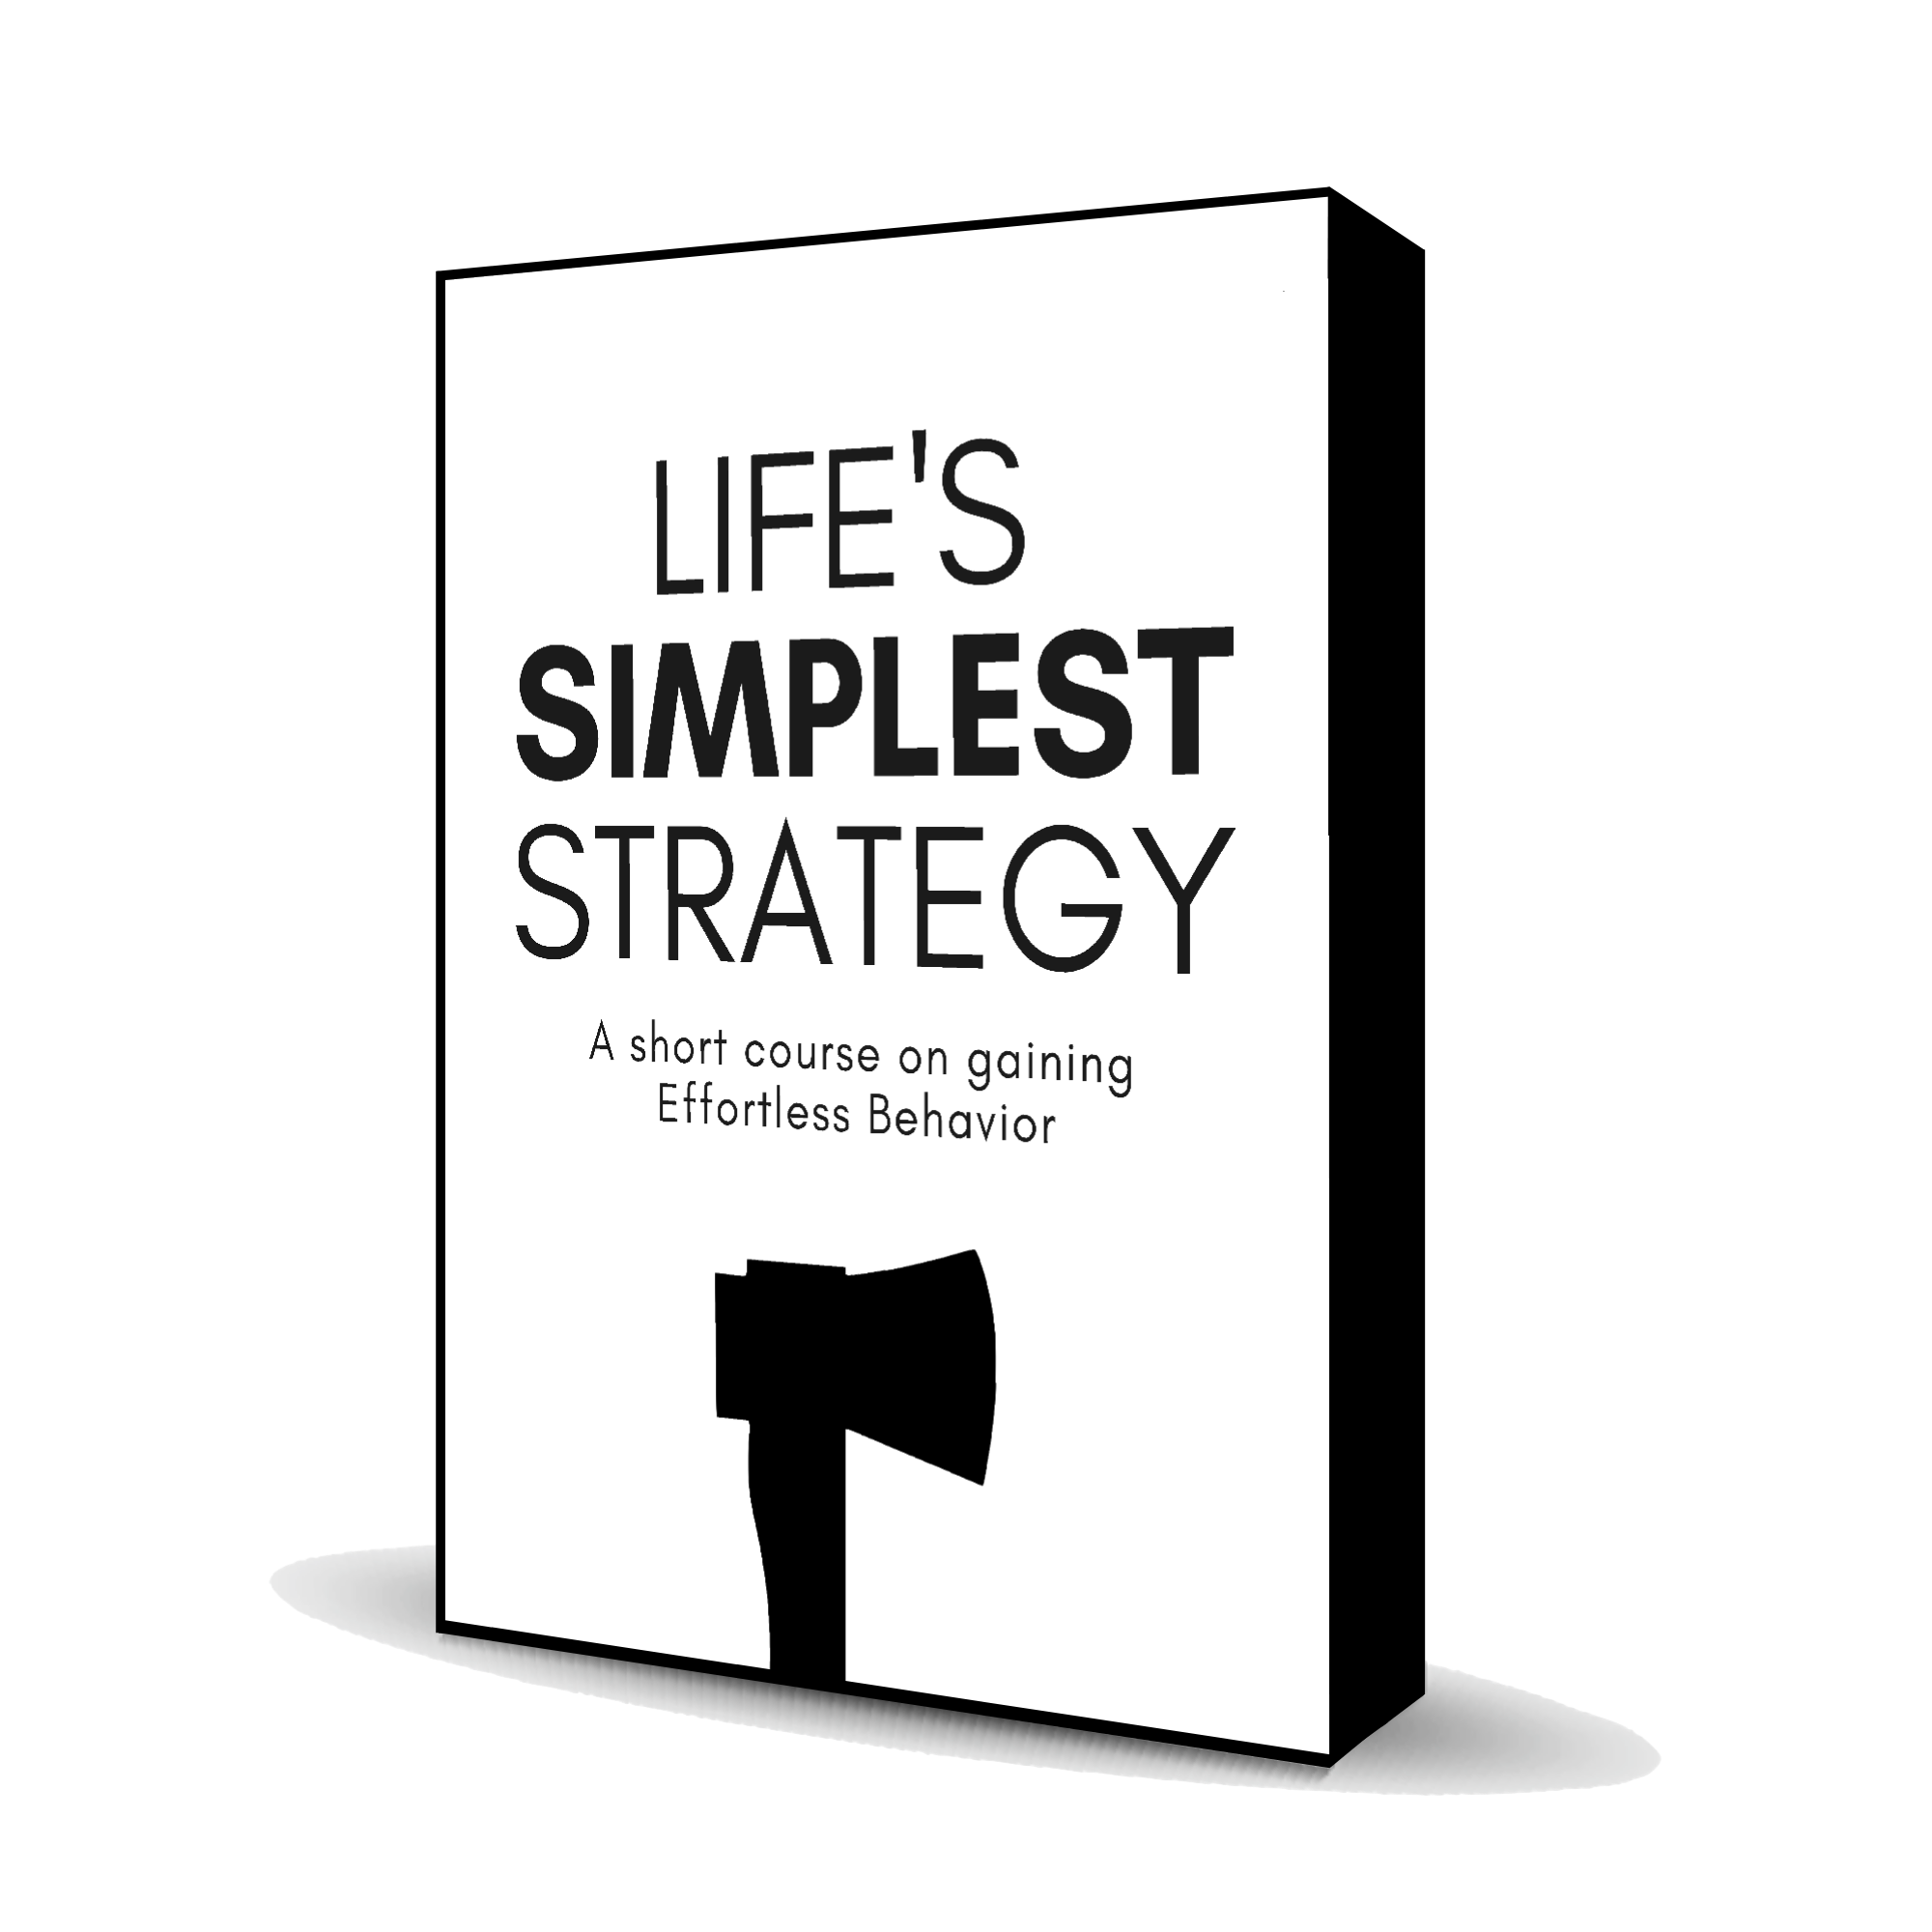 Life's Simplest Strategy - A Short Course on Gaining Effortless Behavior - Hack That Habit